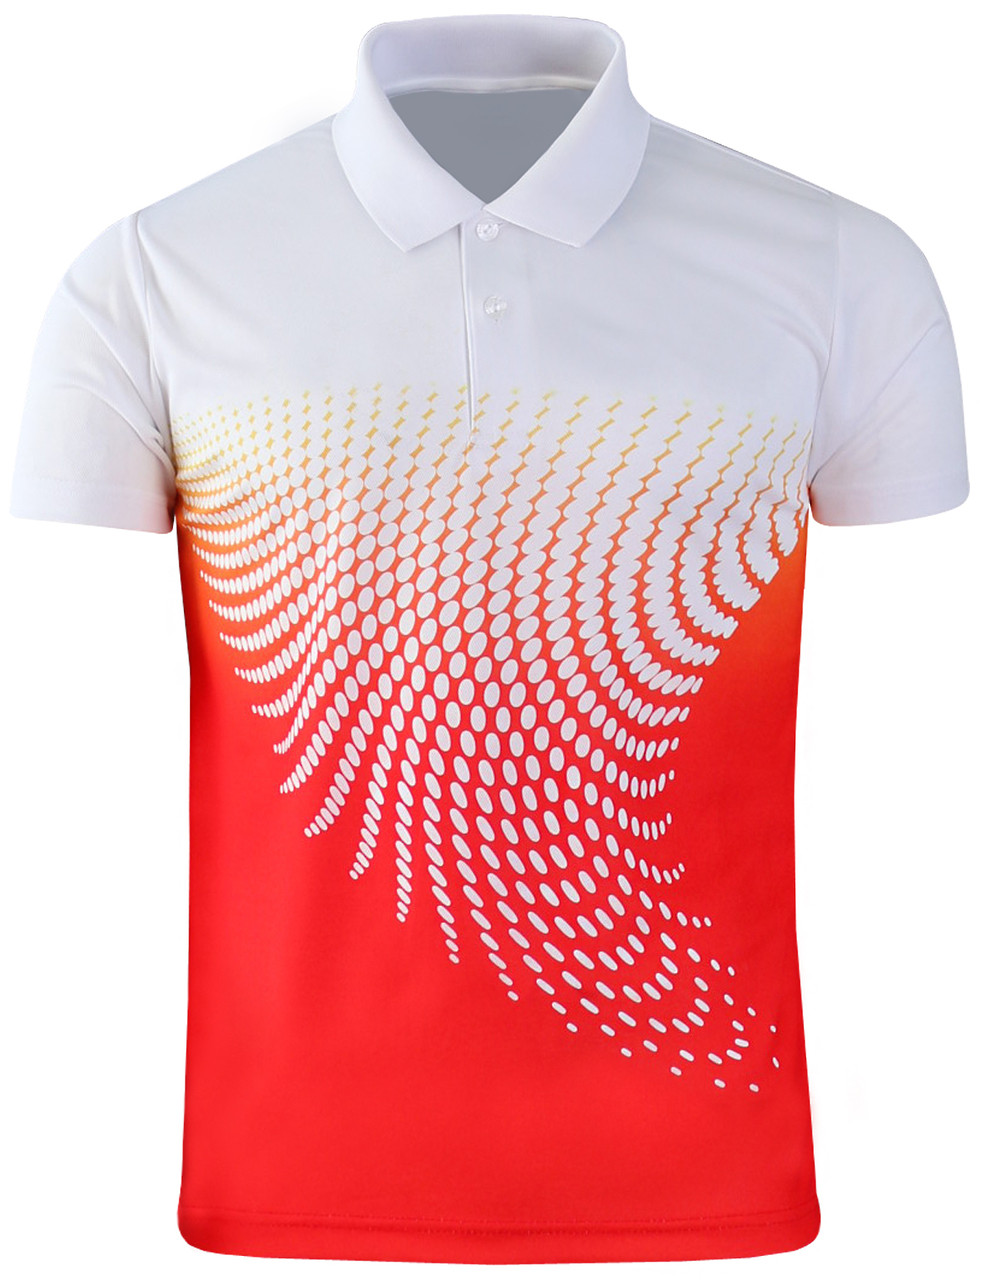 in stock clearance sale sophisticated technologies Casual short sleeves Graphic pattern Design Polo Shirt-Unisex